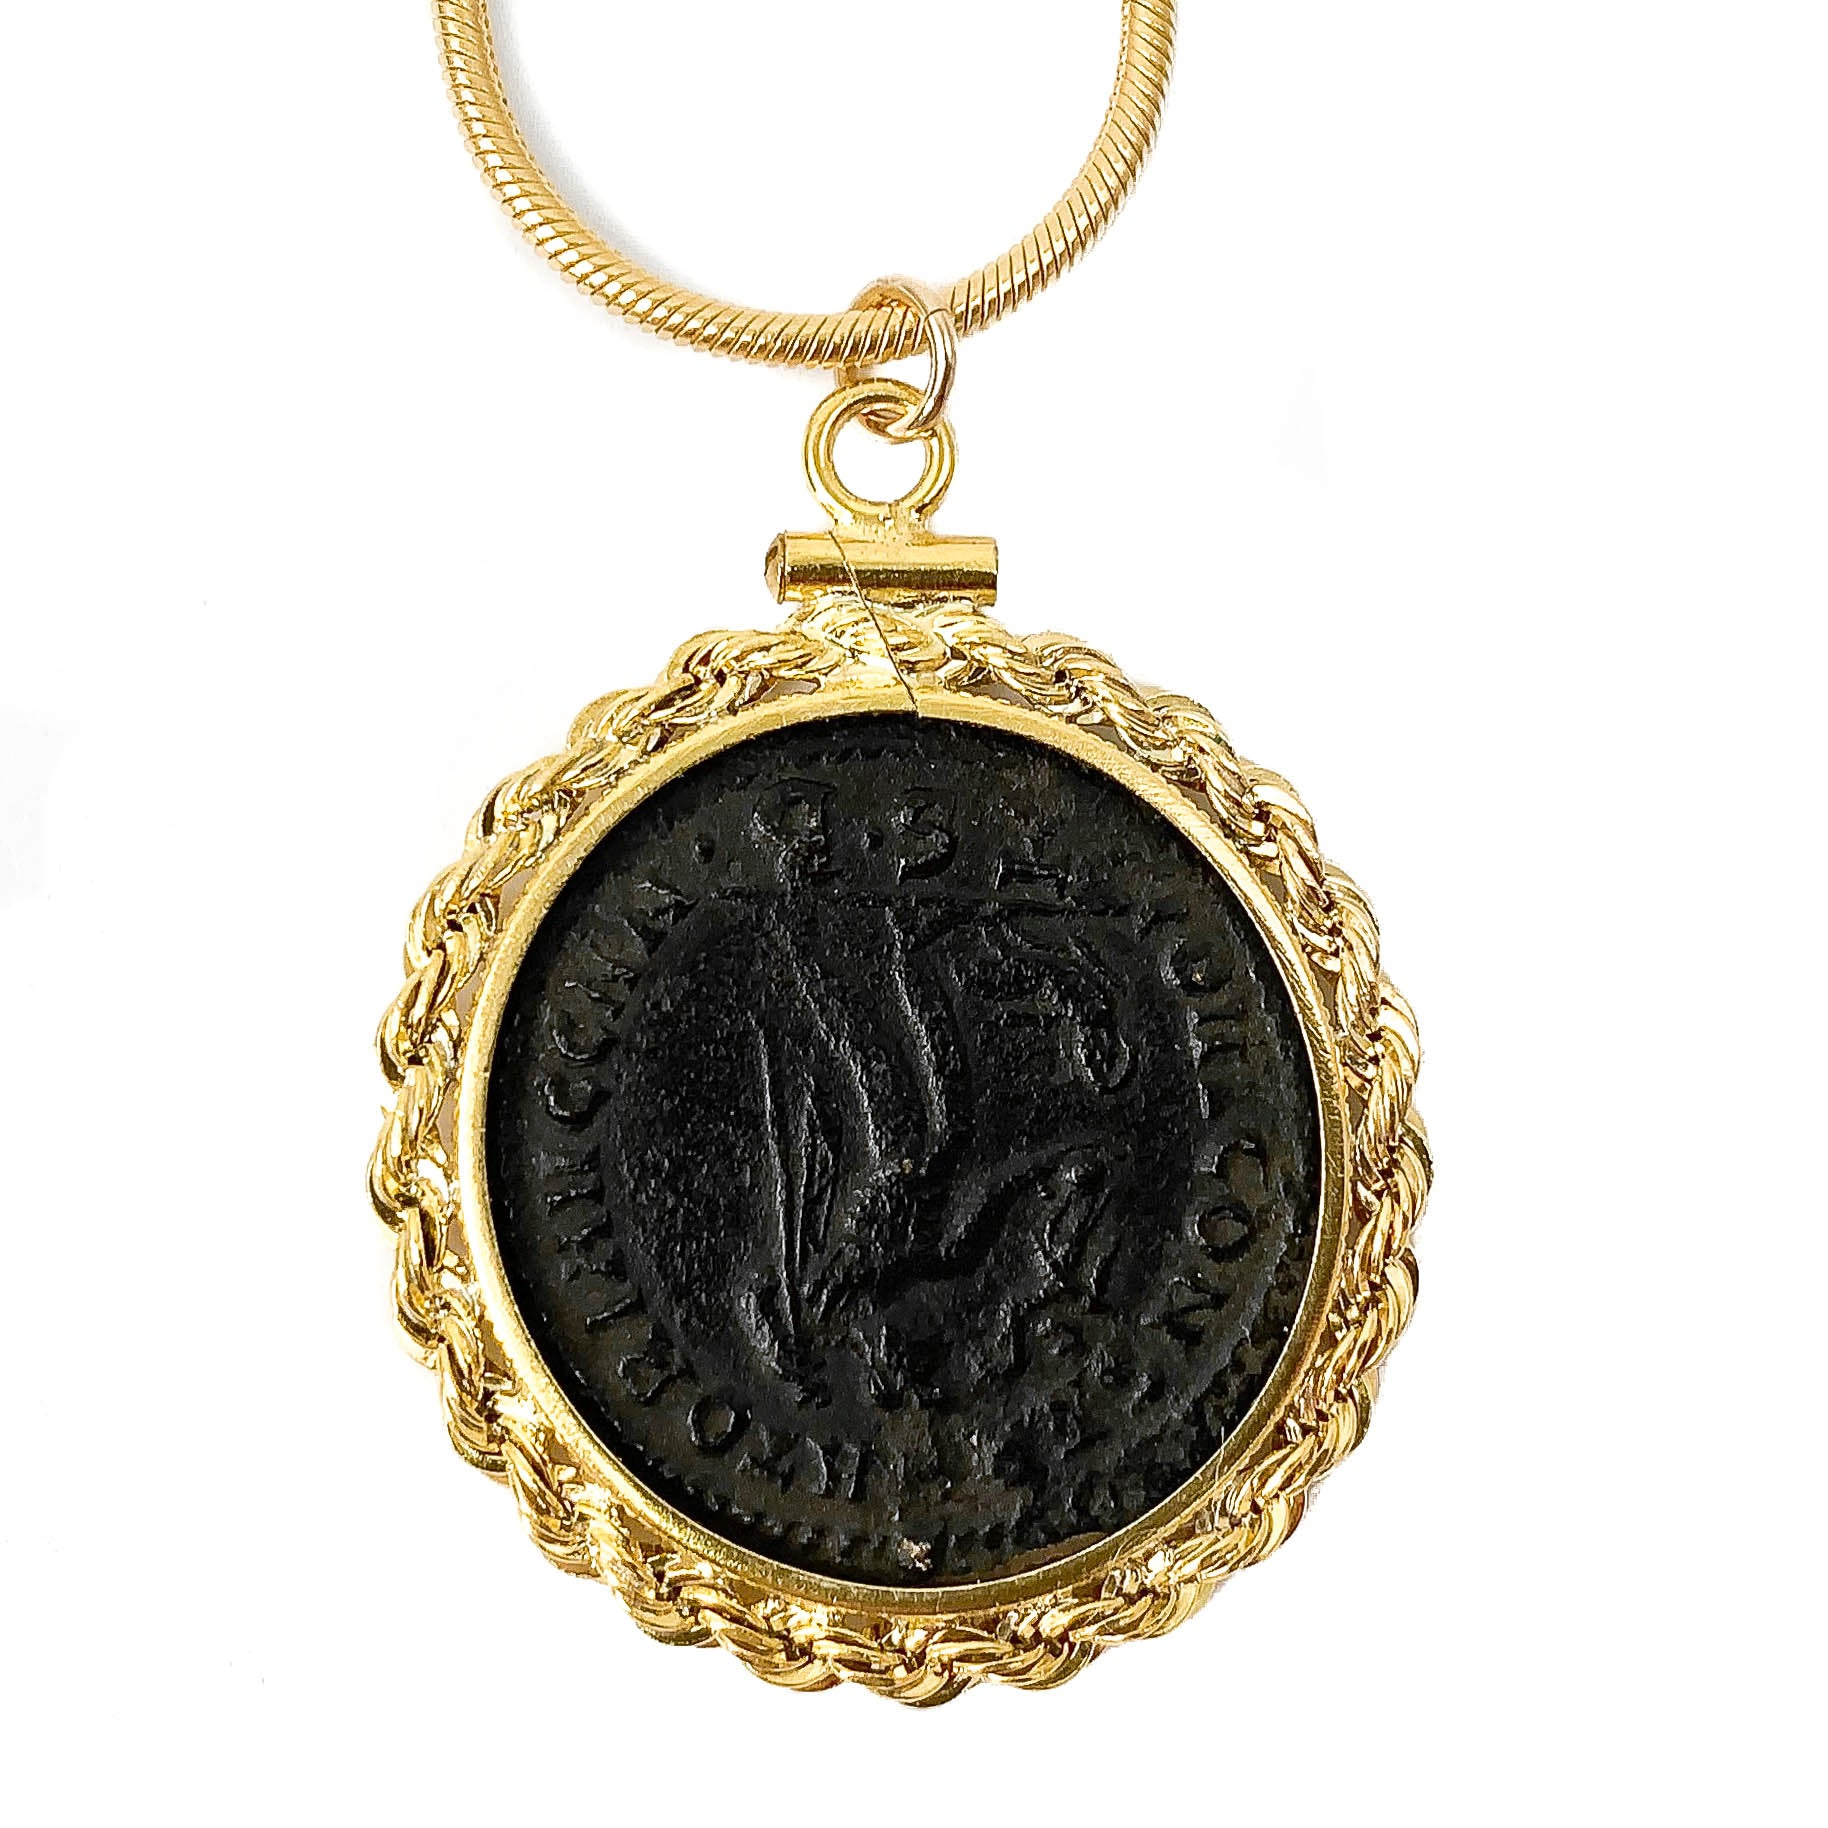 14 Gold Filled Genuine Ancient Roman Coin Necklace (CONSTANTINE THE GREAT, 306-337 A.D.)